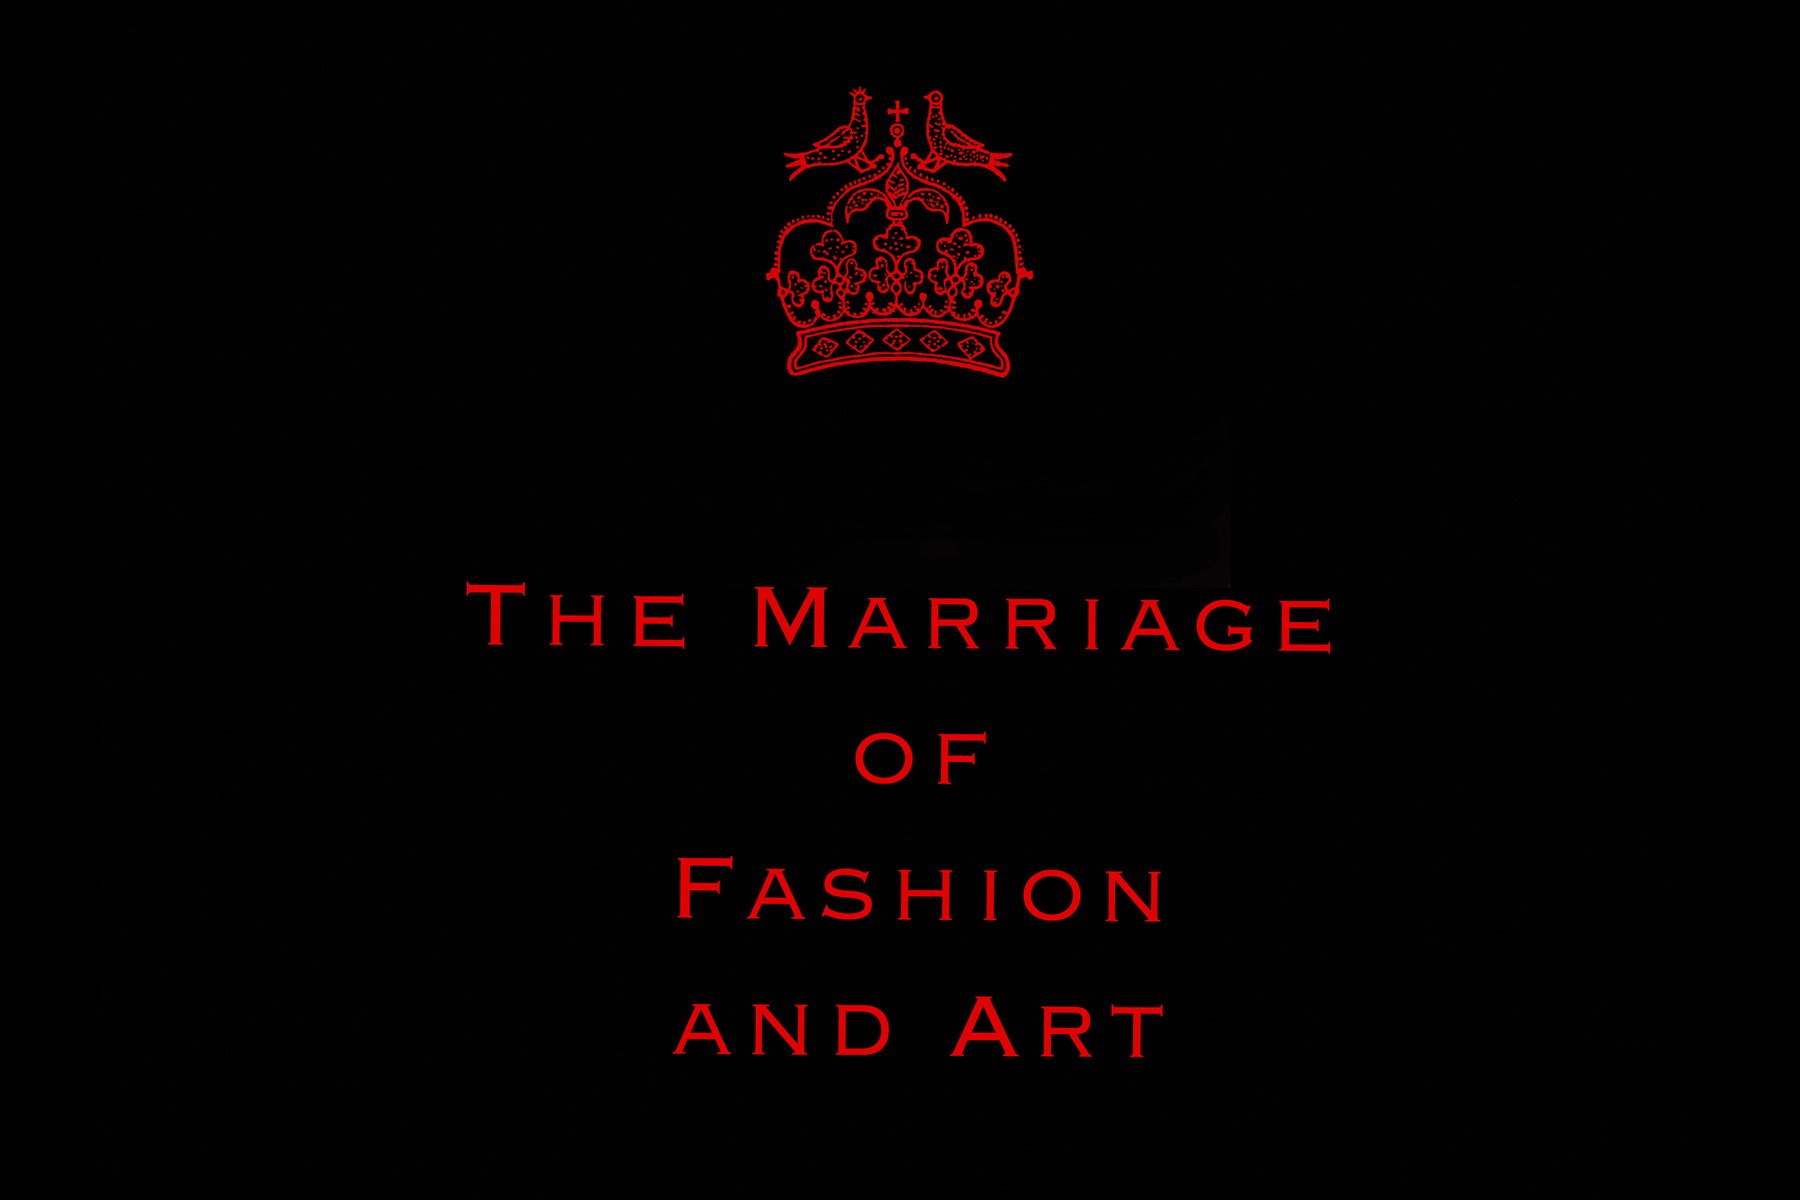 The Marriage of Fashion and Art